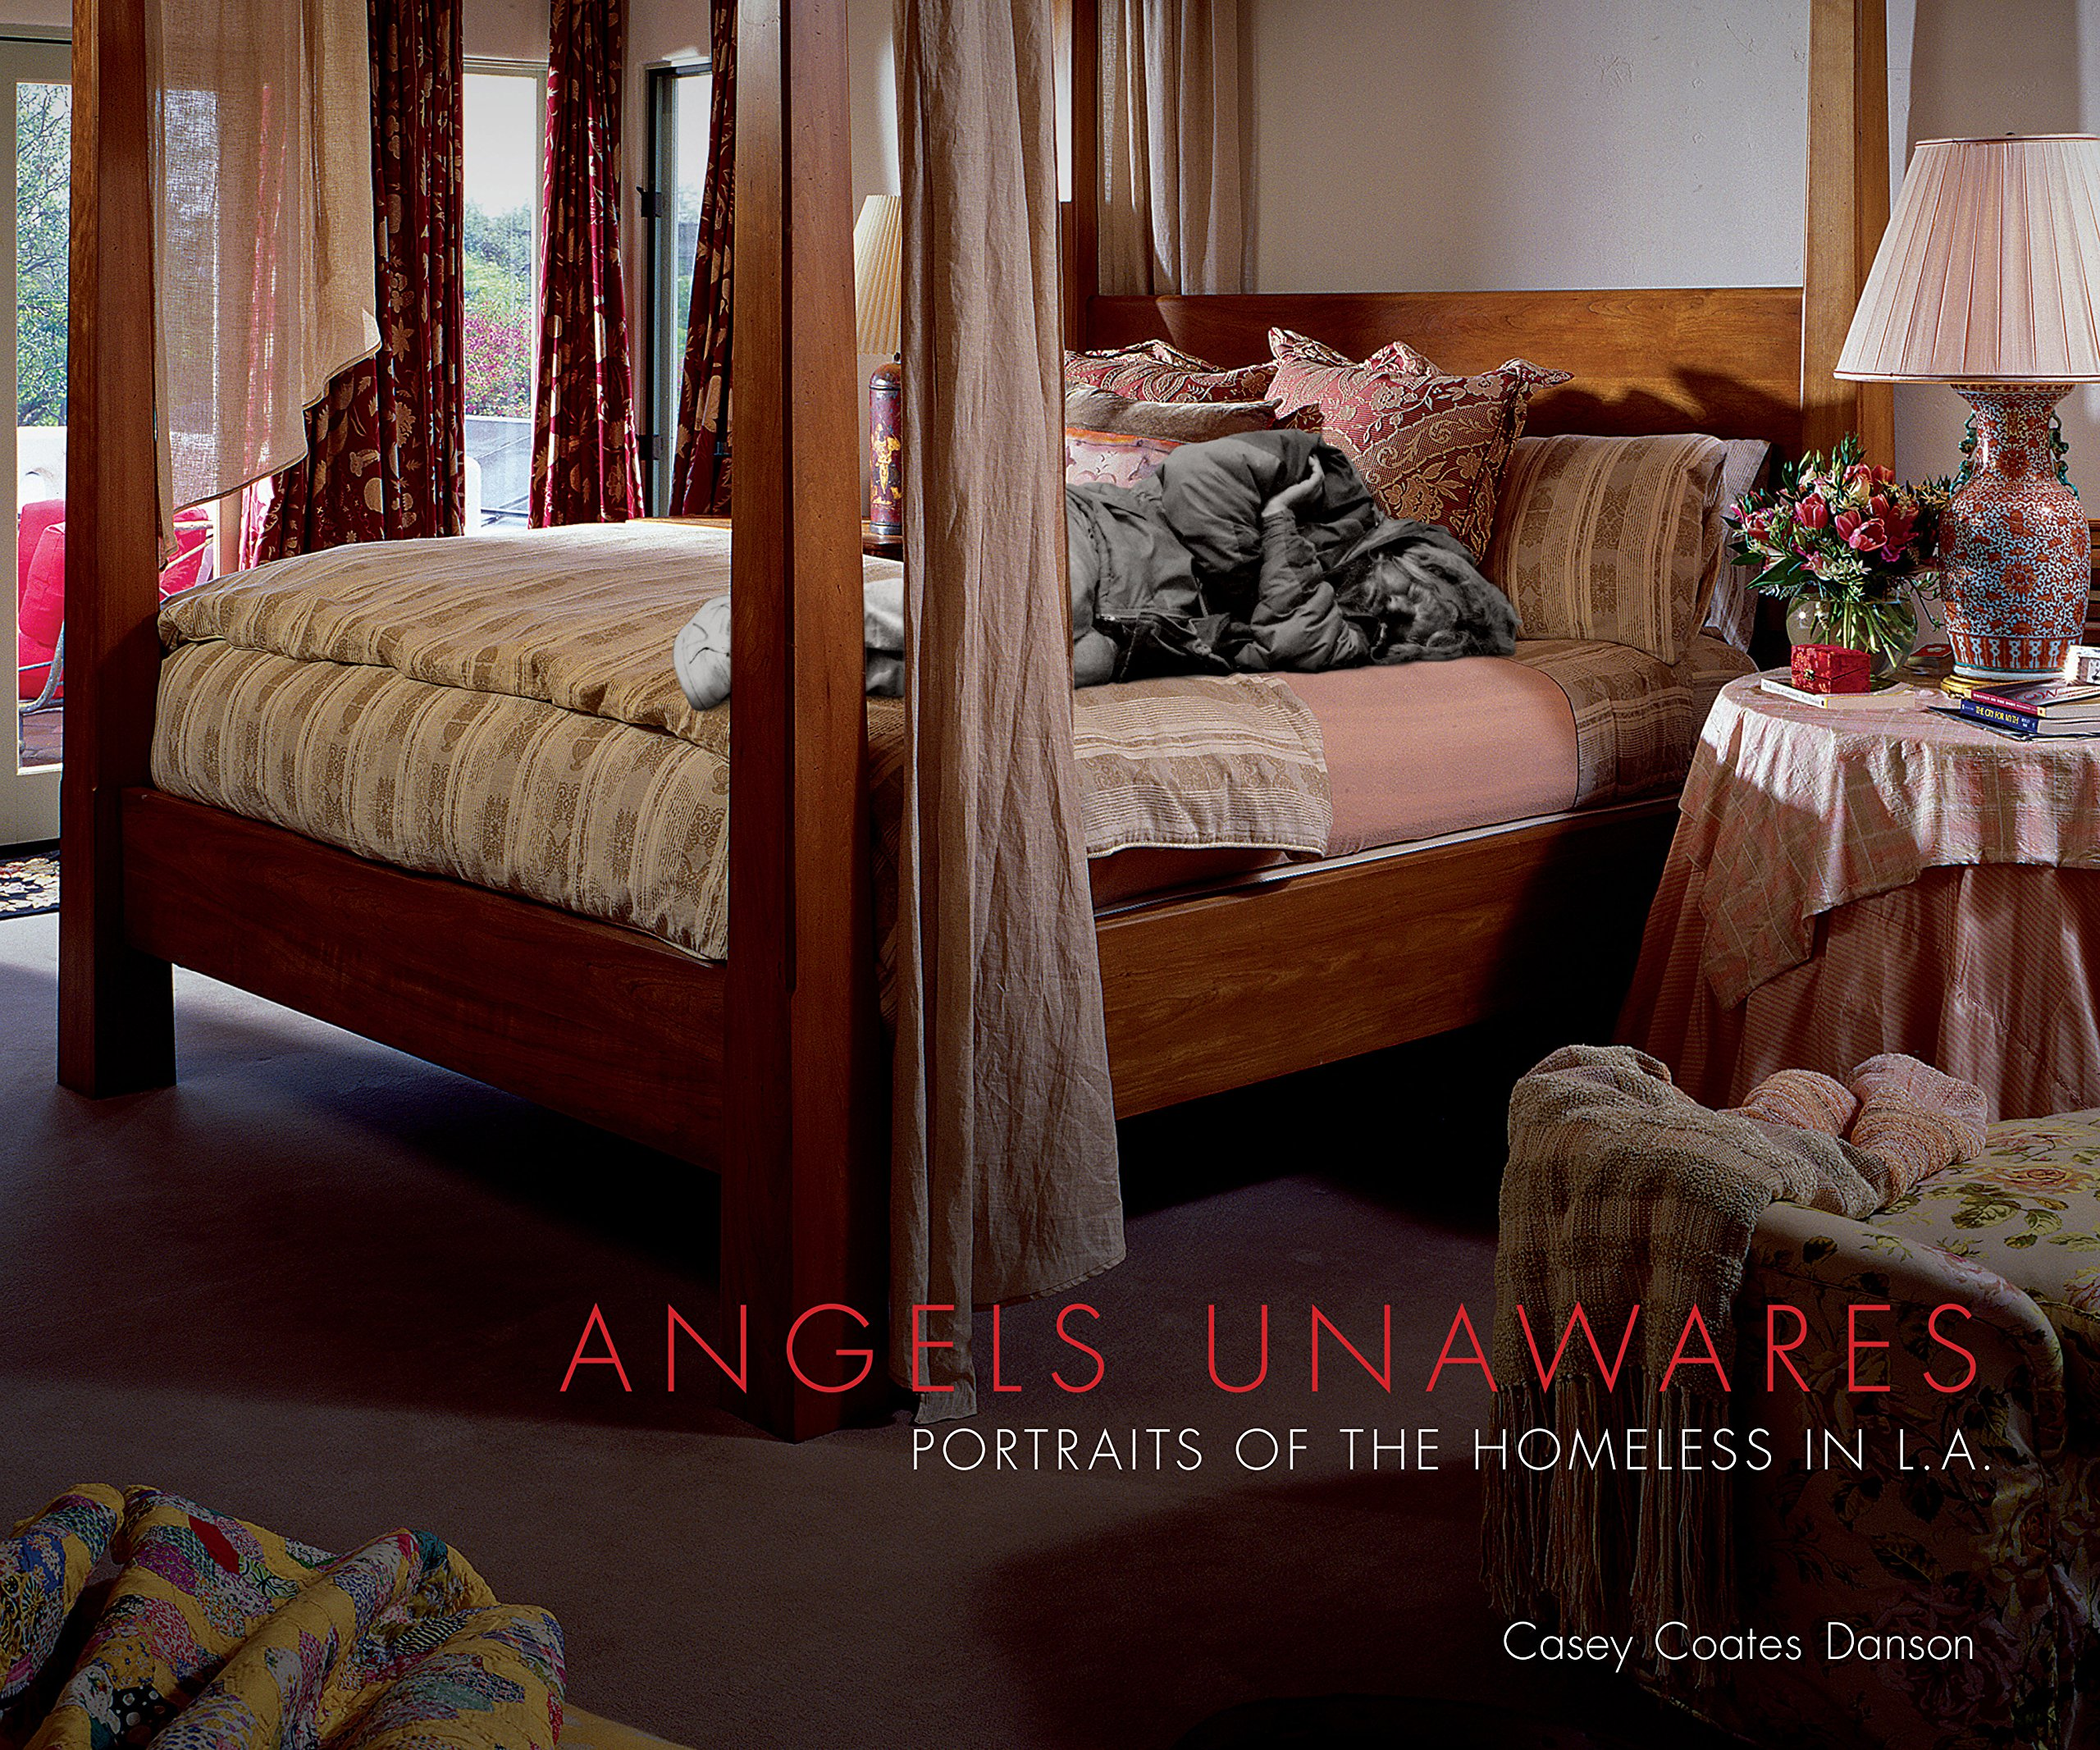 Angels Unawares: Portraits of the Homeless of L.A.